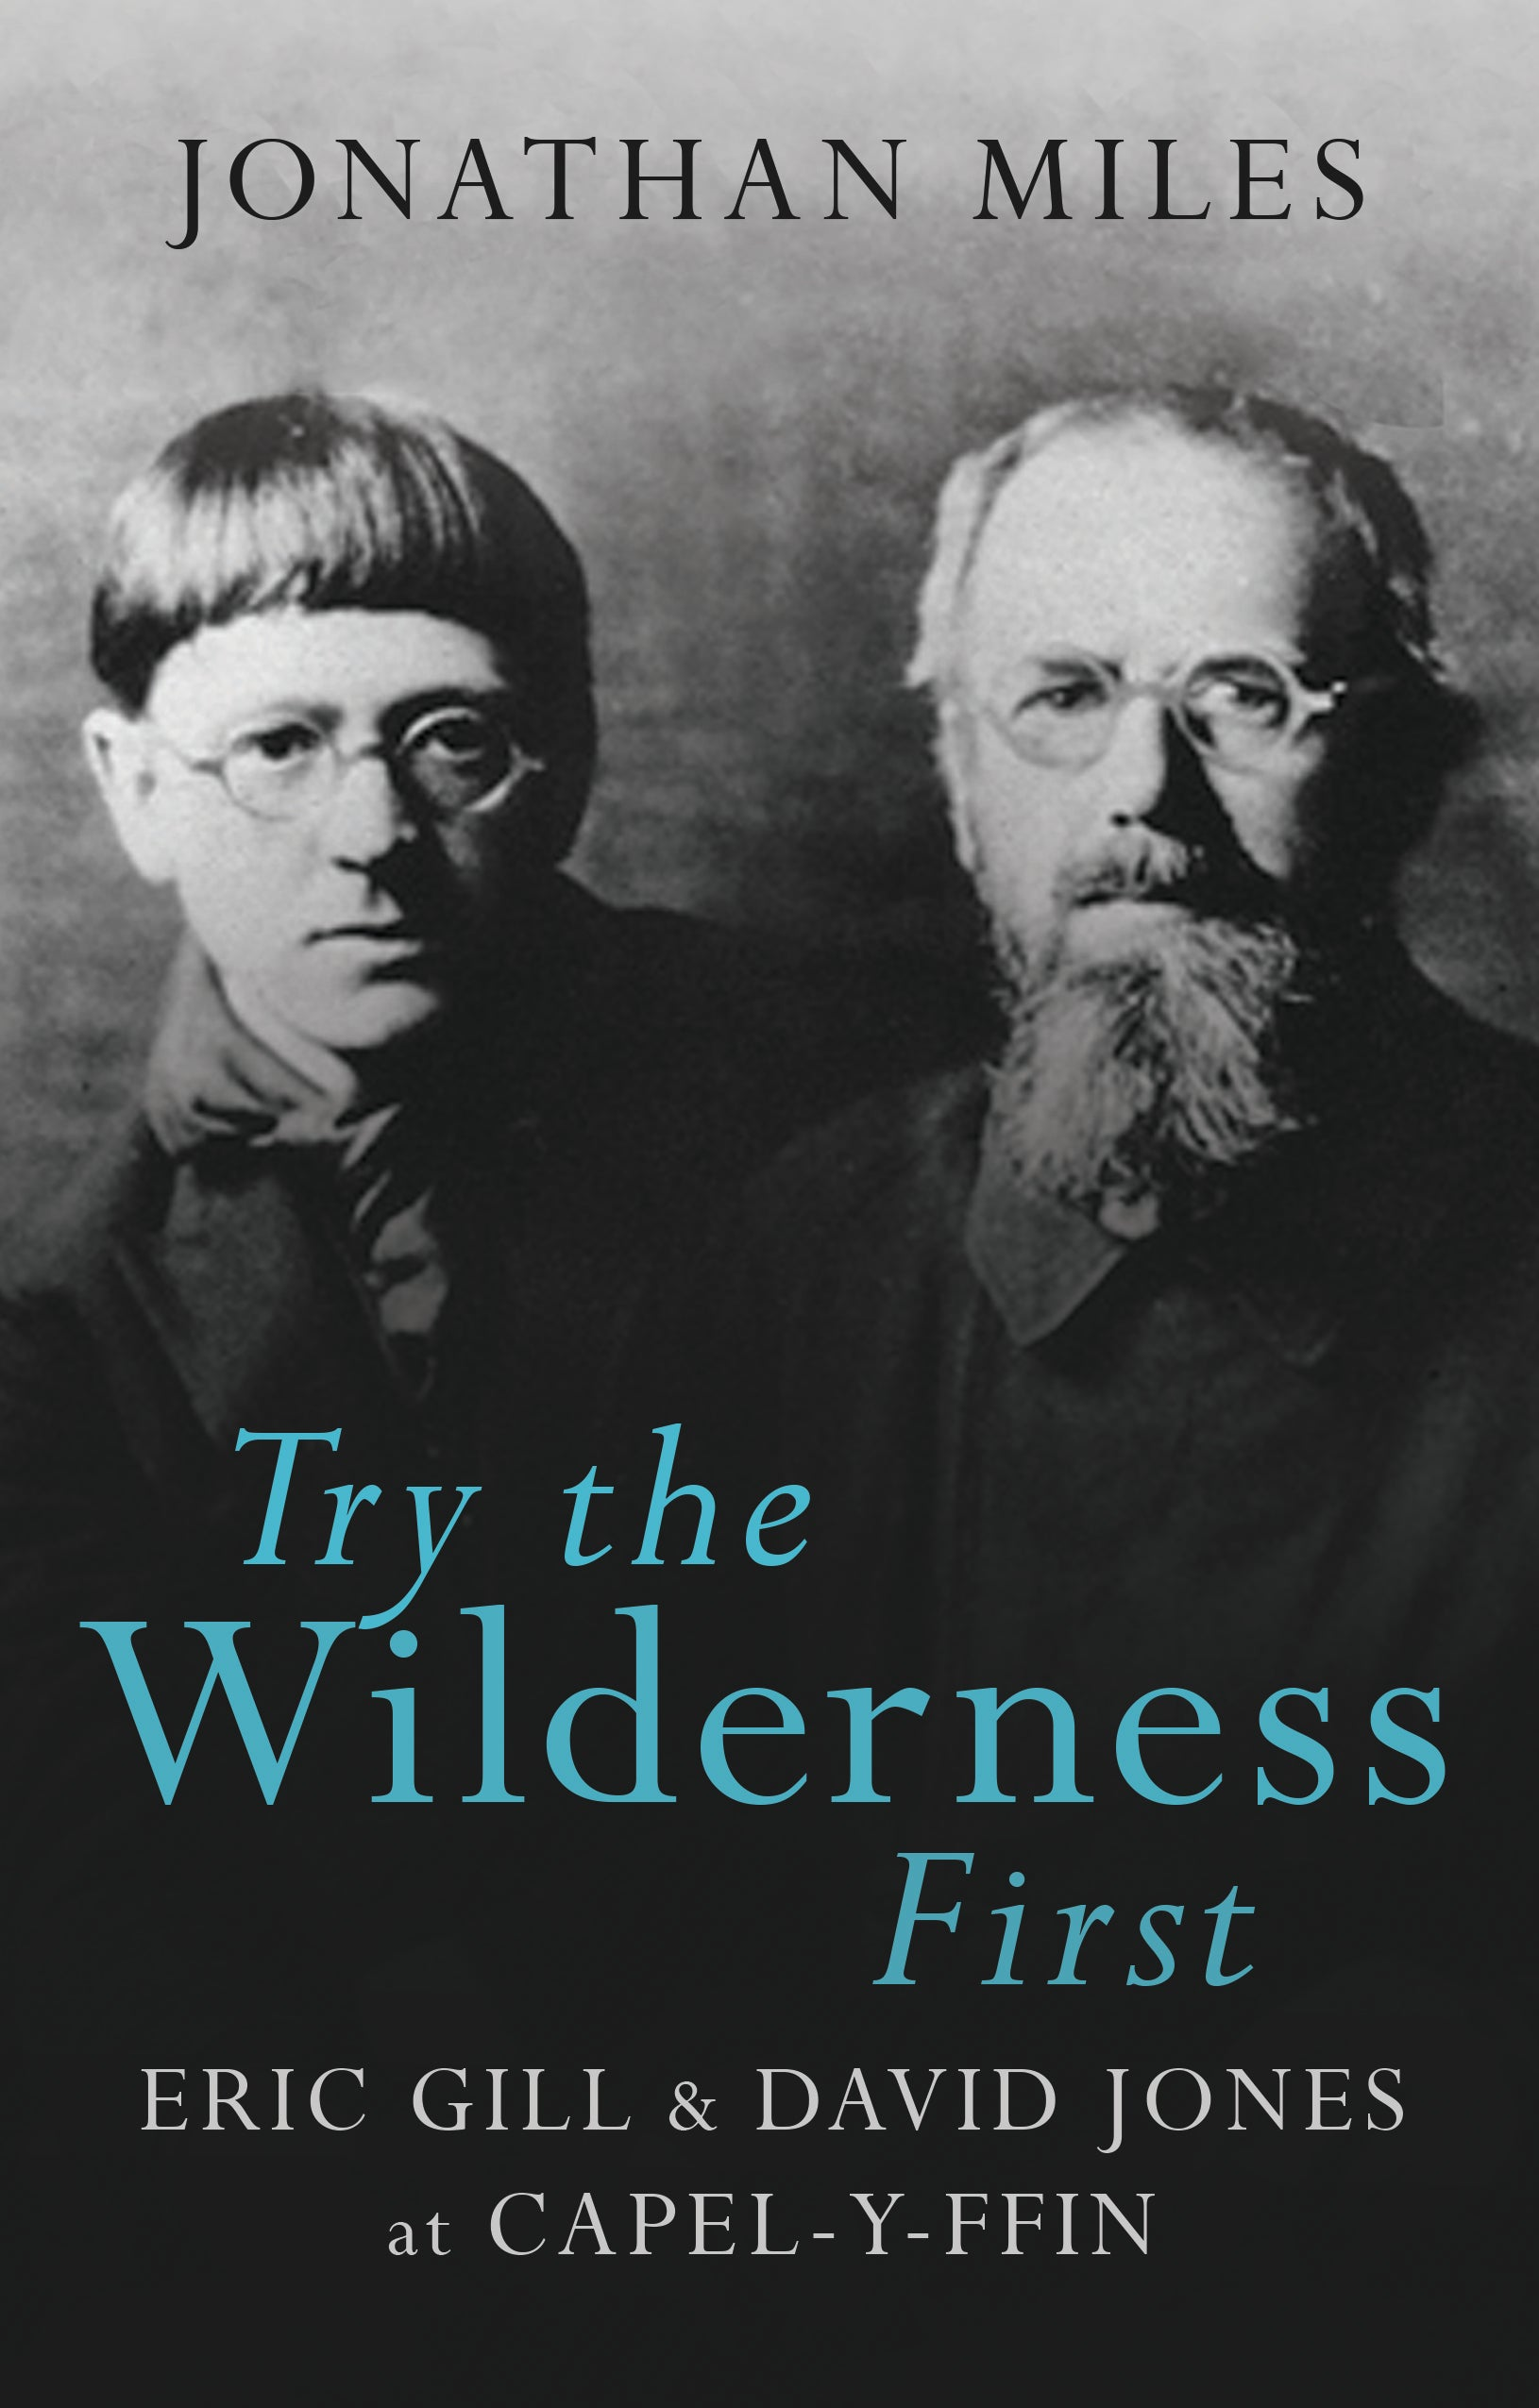 Try the Wilderness First